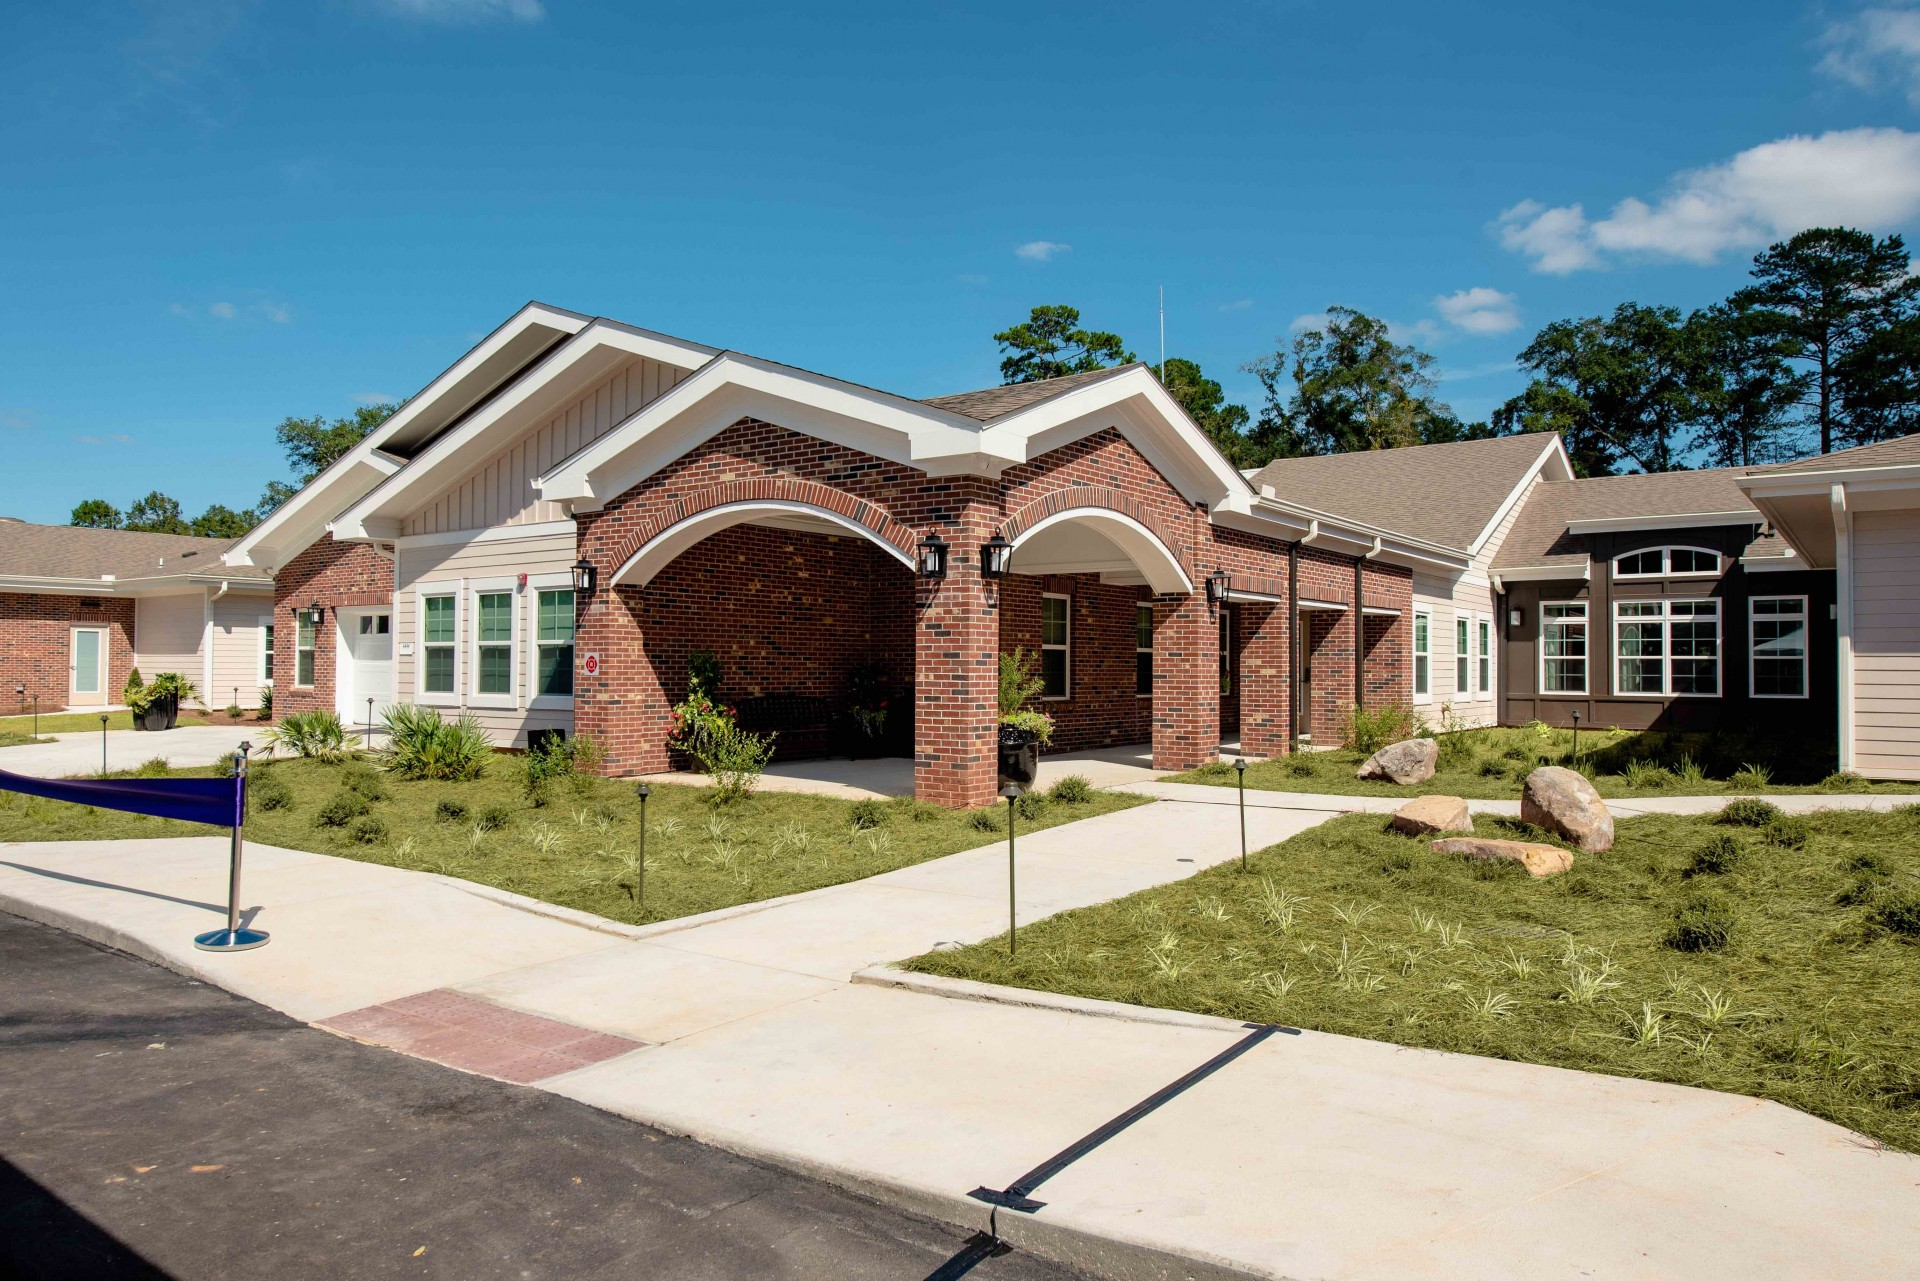 The new Memory Care building at Westminster Oaks in Tallahassee, featuring 32 new apartment residences for Memory Care Assisted Living.